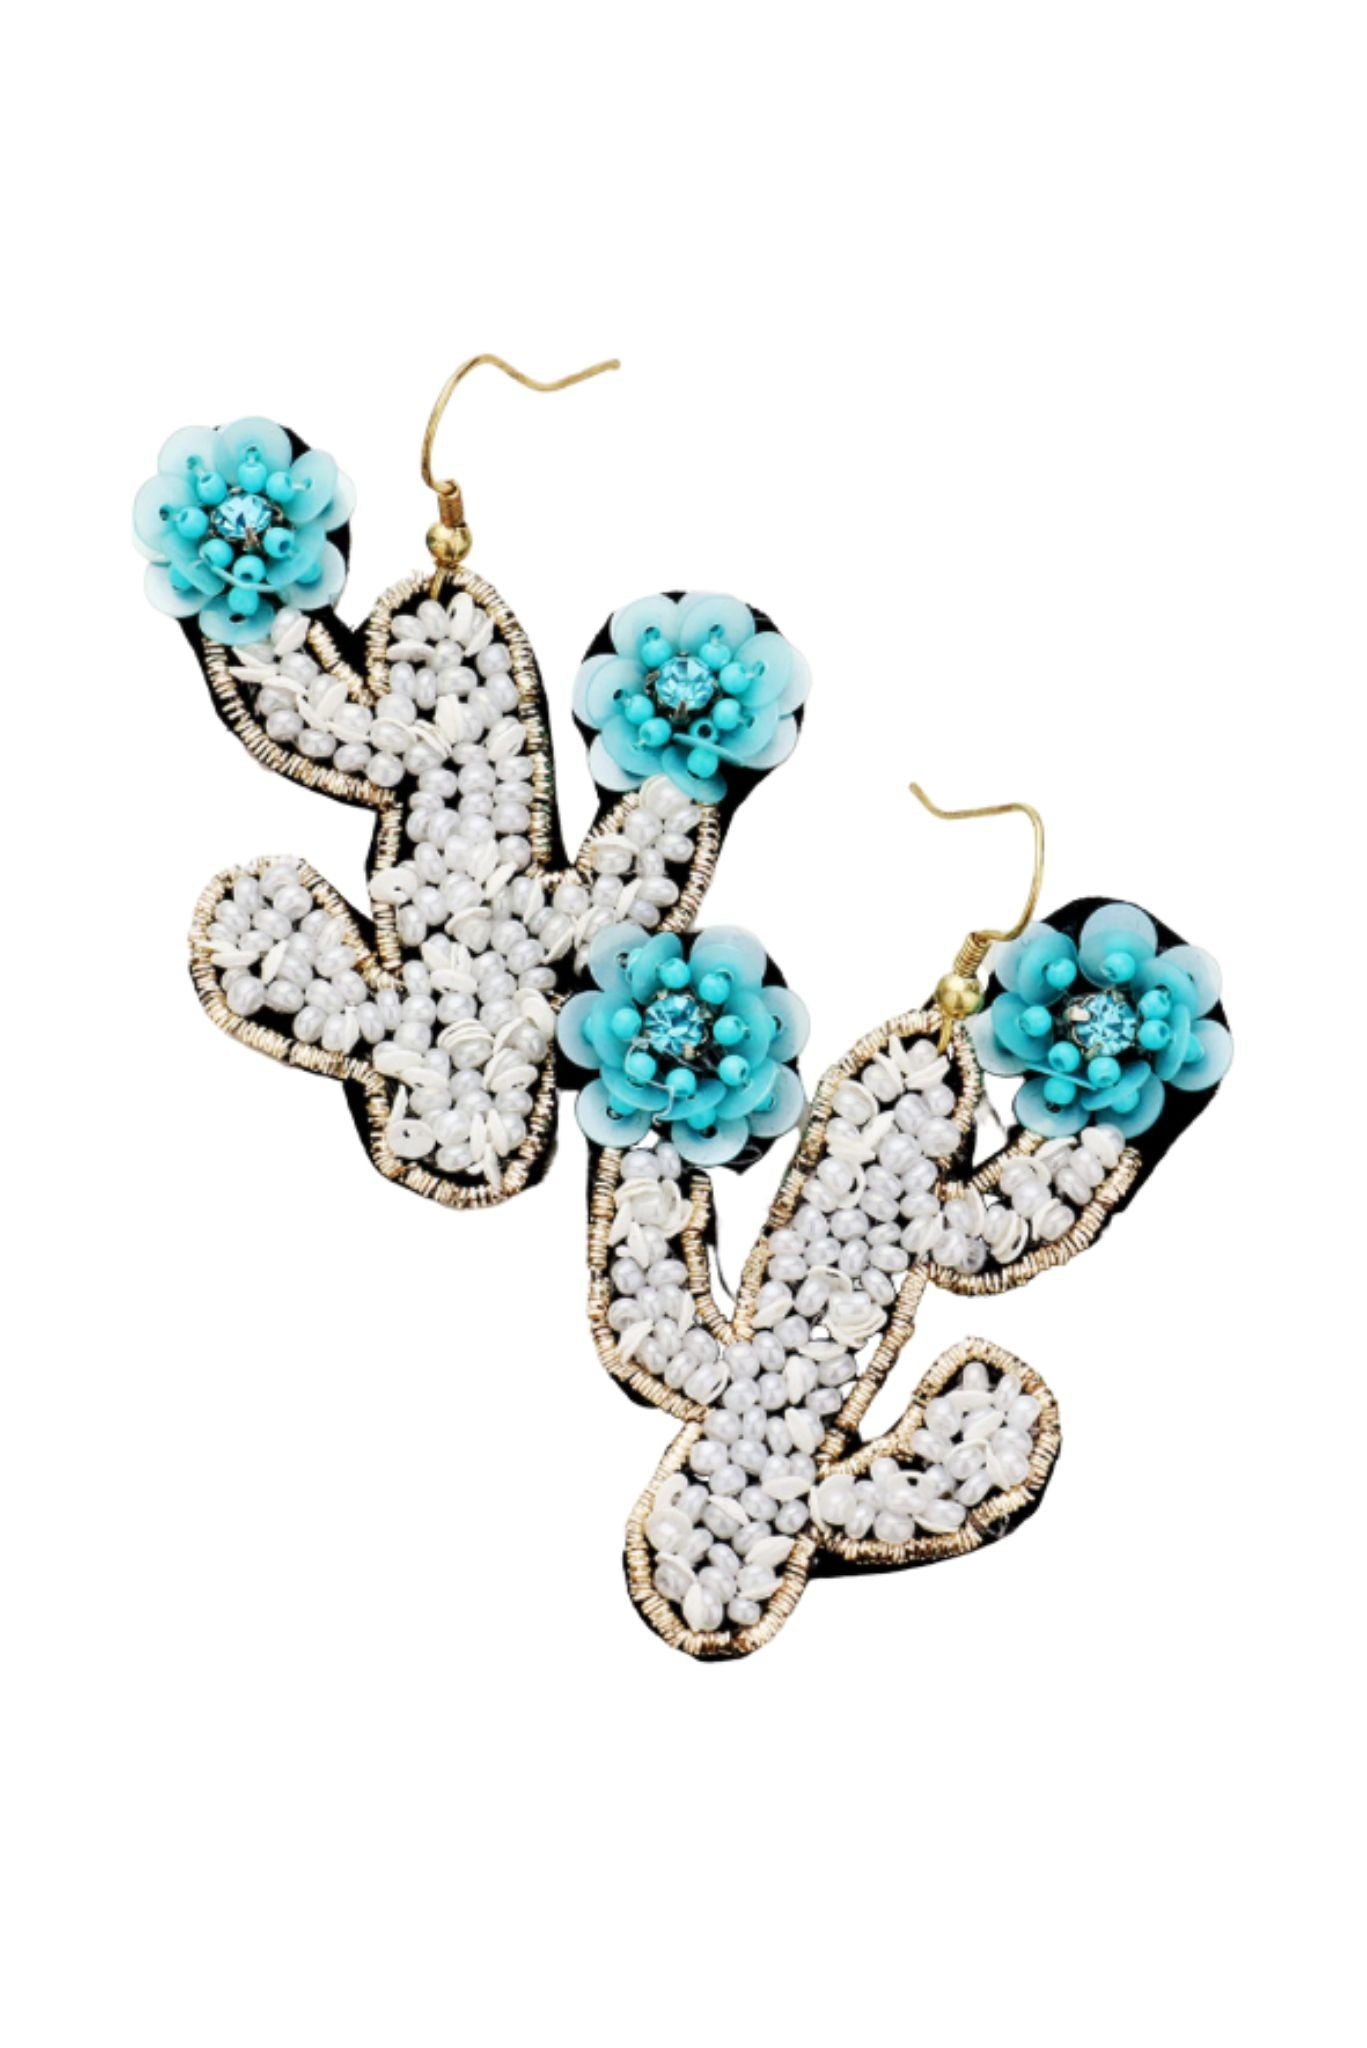 White Beaded Cactus Earrings w/ Turquoise Flowers